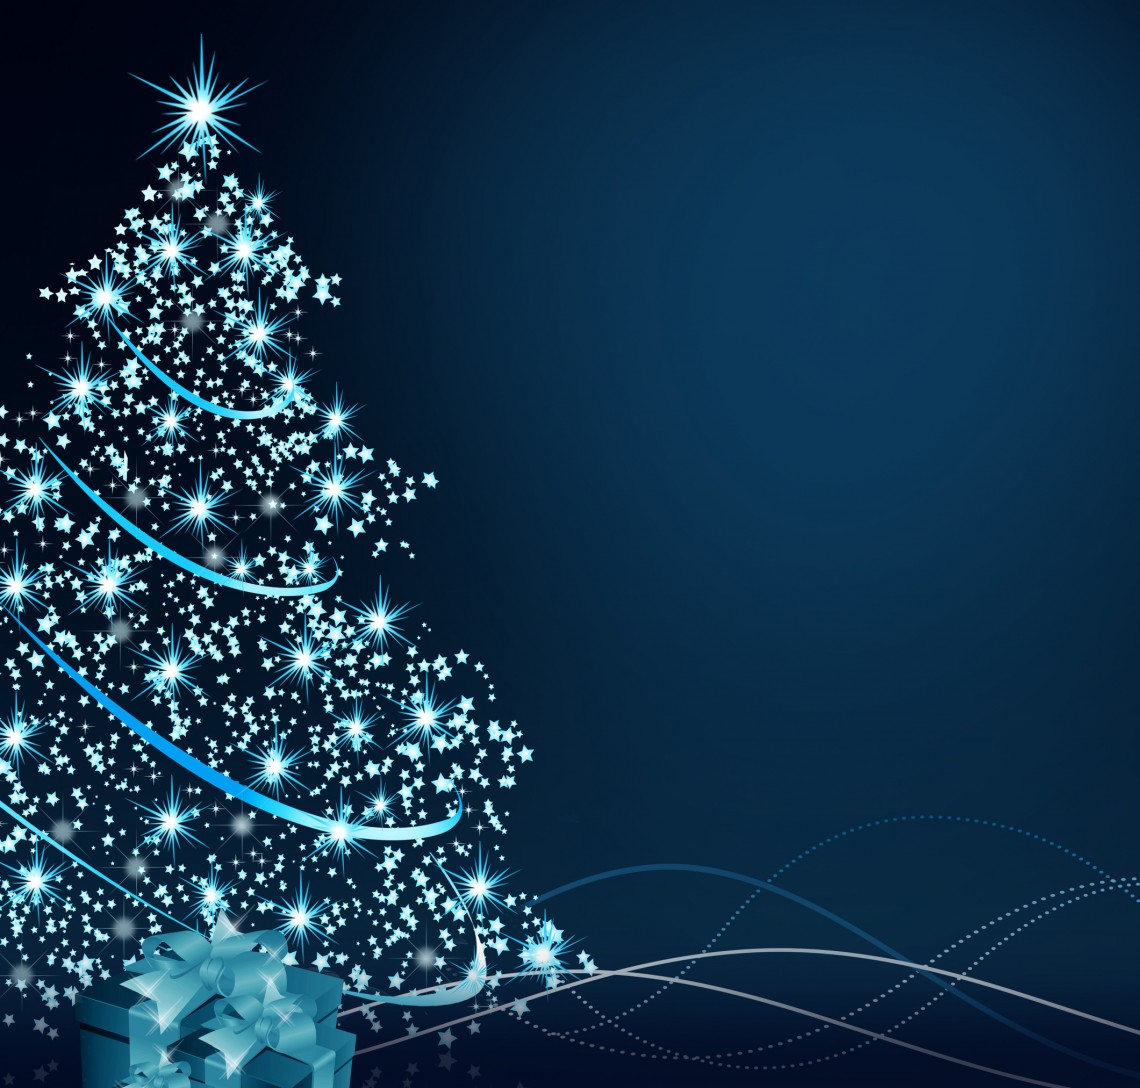 Merry Christmas and Happy New Year to our patients. Here are our holiday hours